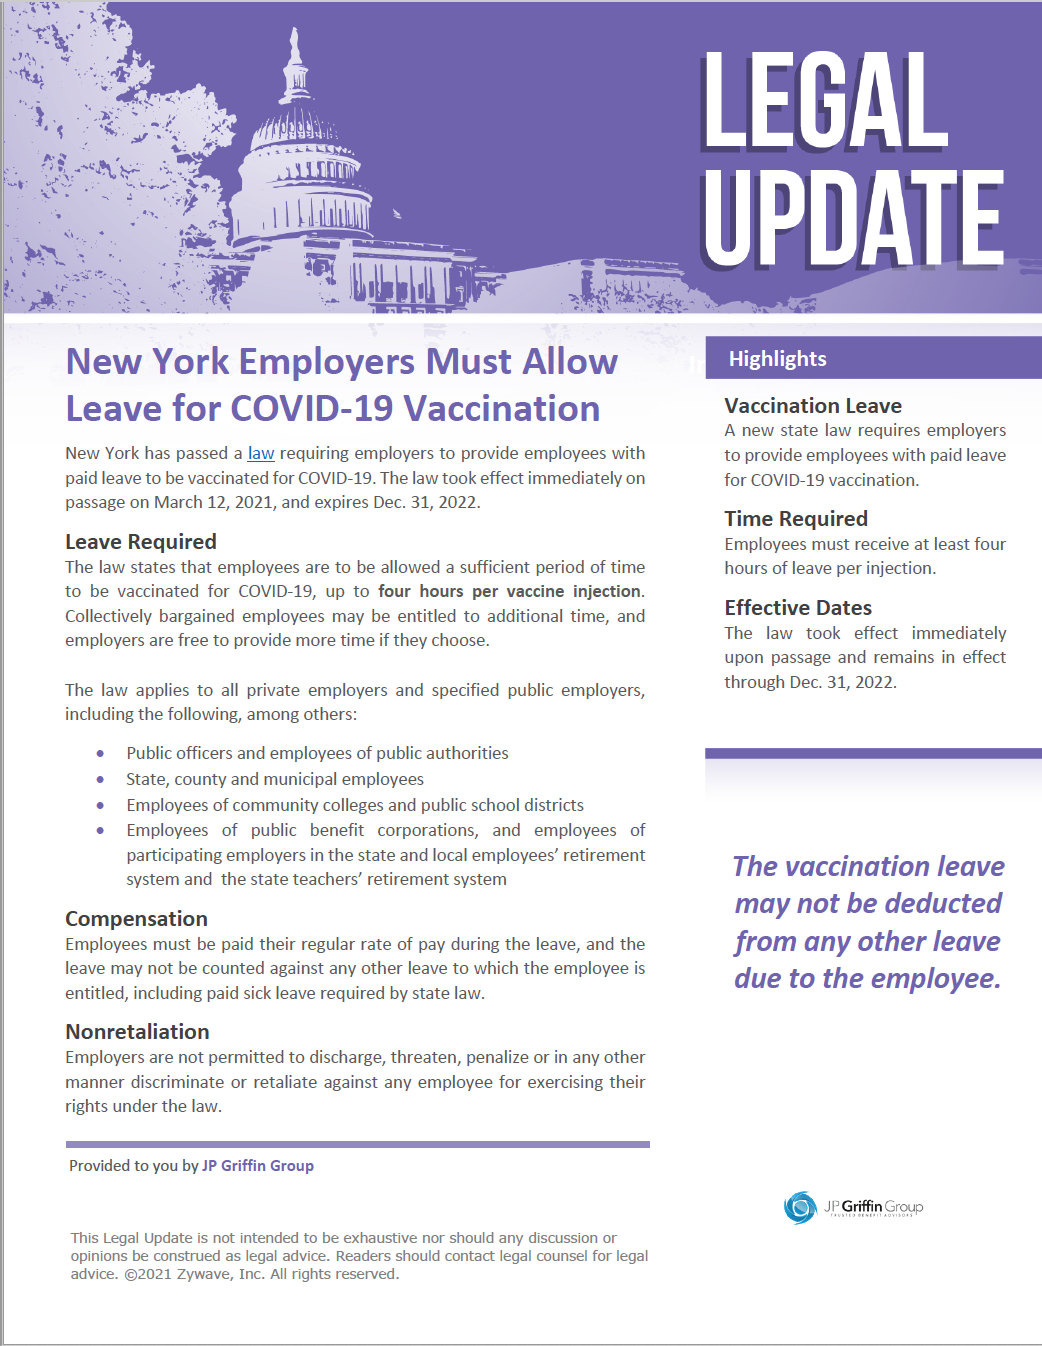 New York Employers Must Allow Leave for COVID-19 Vaccination (3/17)